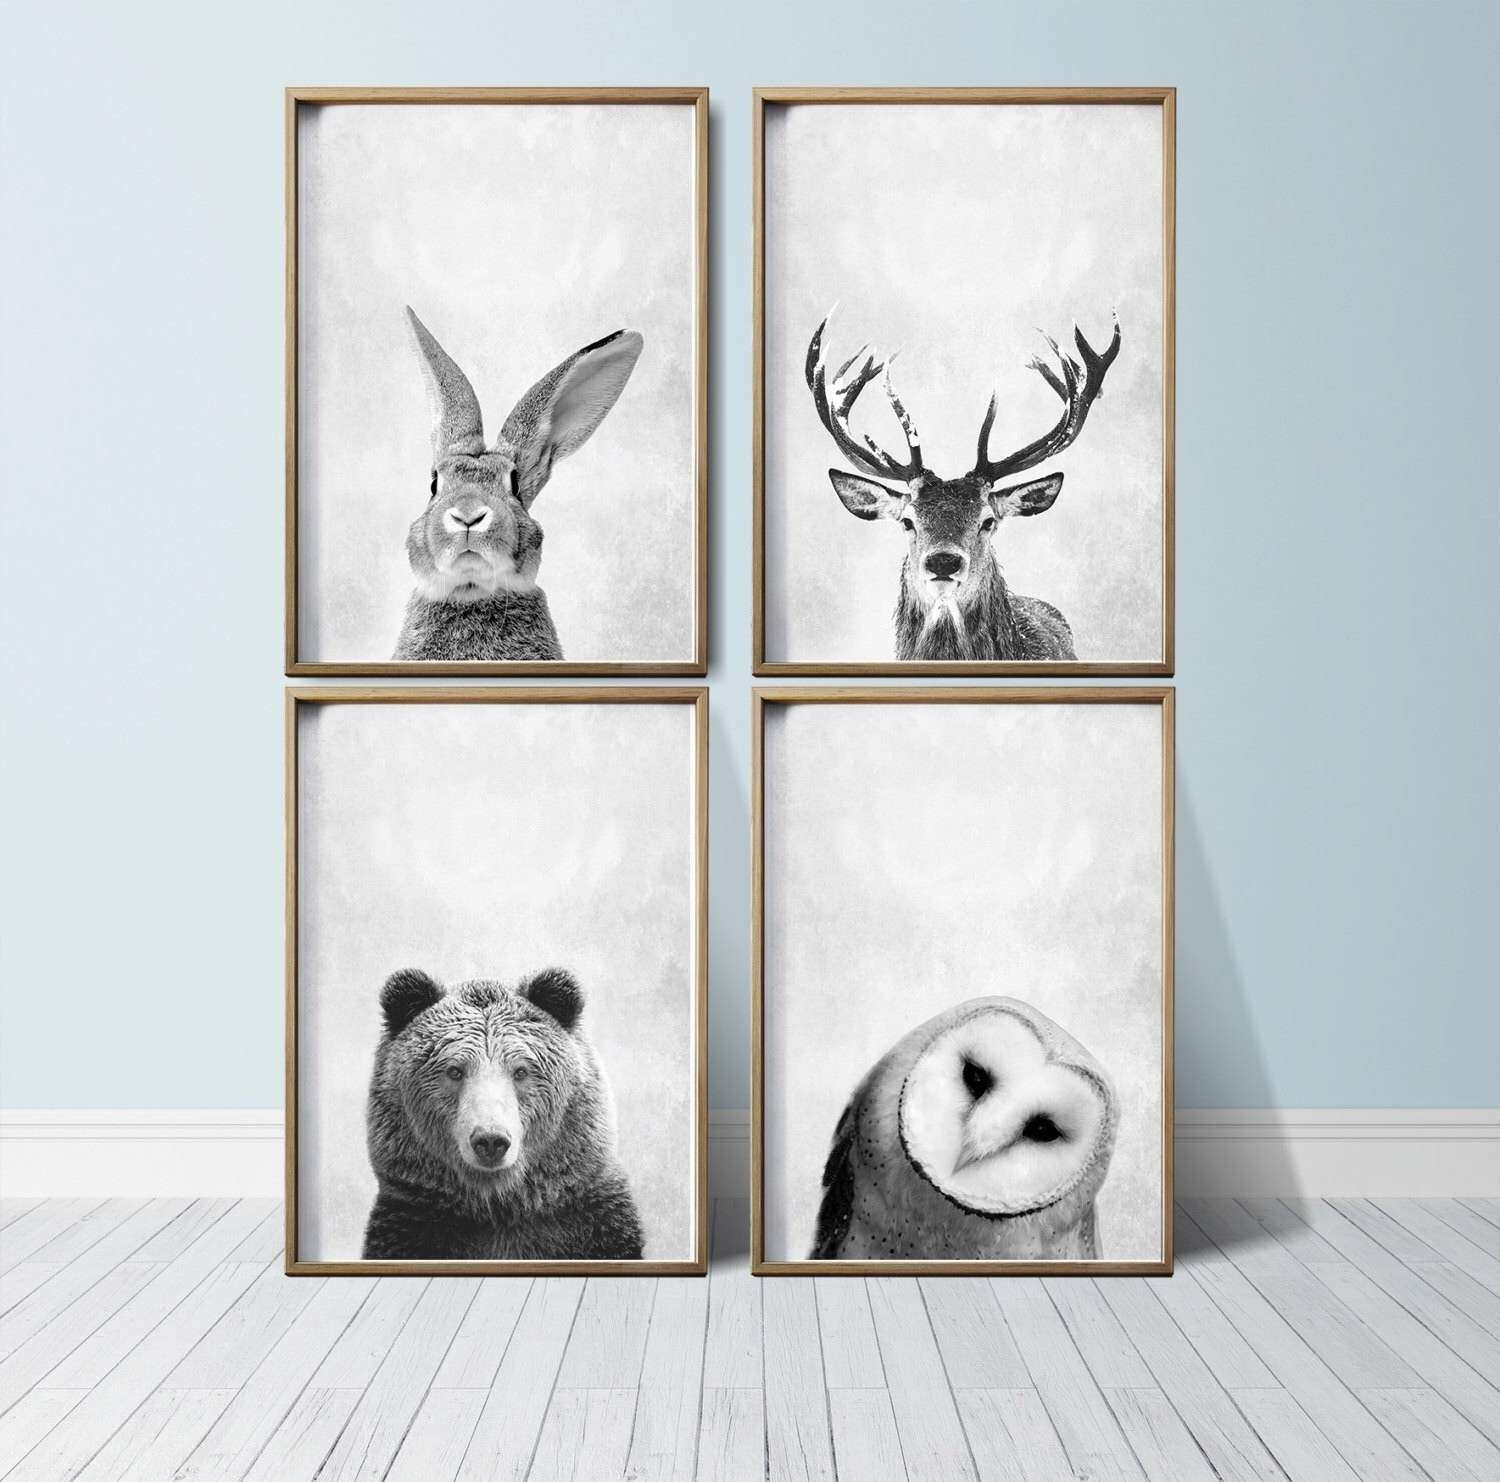 Unique Wall Art Prints Luxury Nursery Wall Art Animal Print Art With Best And Newest Woodland Nursery Wall Art (View 11 of 20)